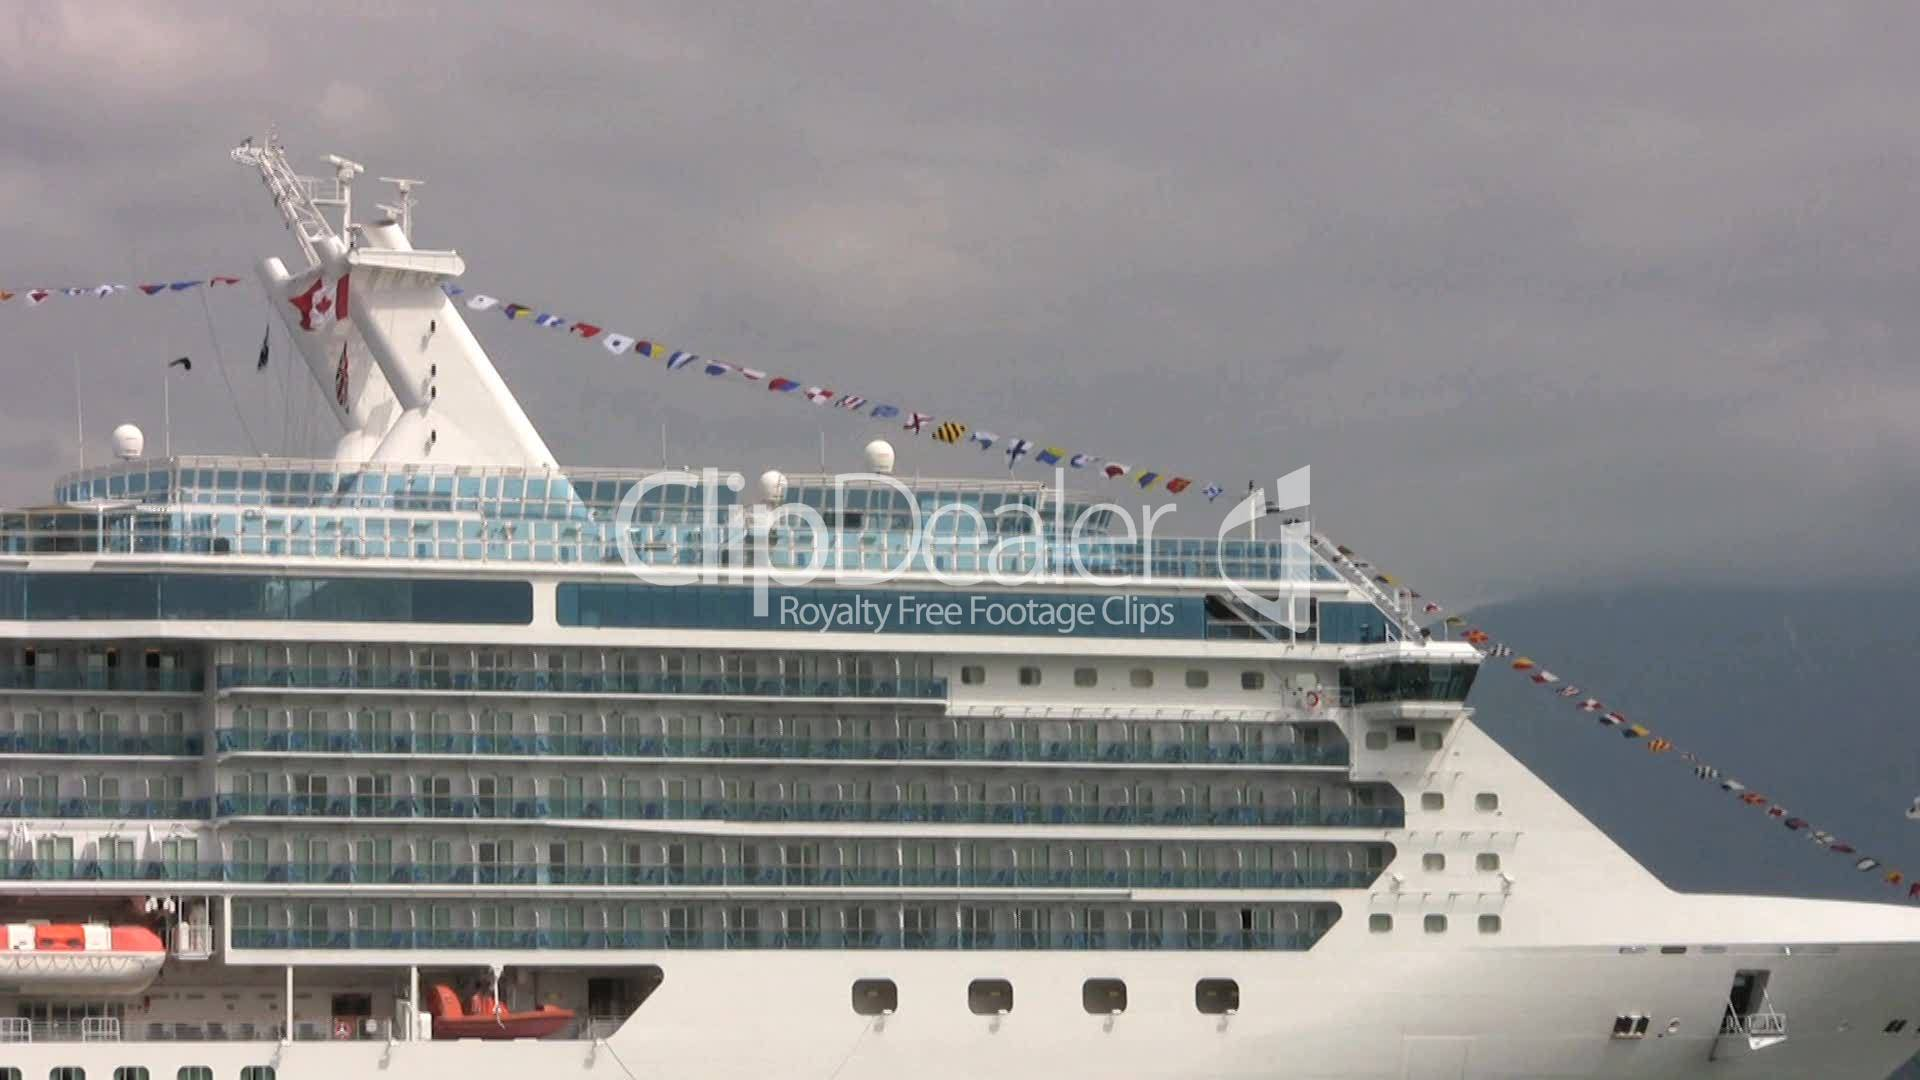 Flags On A Cruise Ship Royaltyfree Video And Stock Footage - Us flagged cruise ships